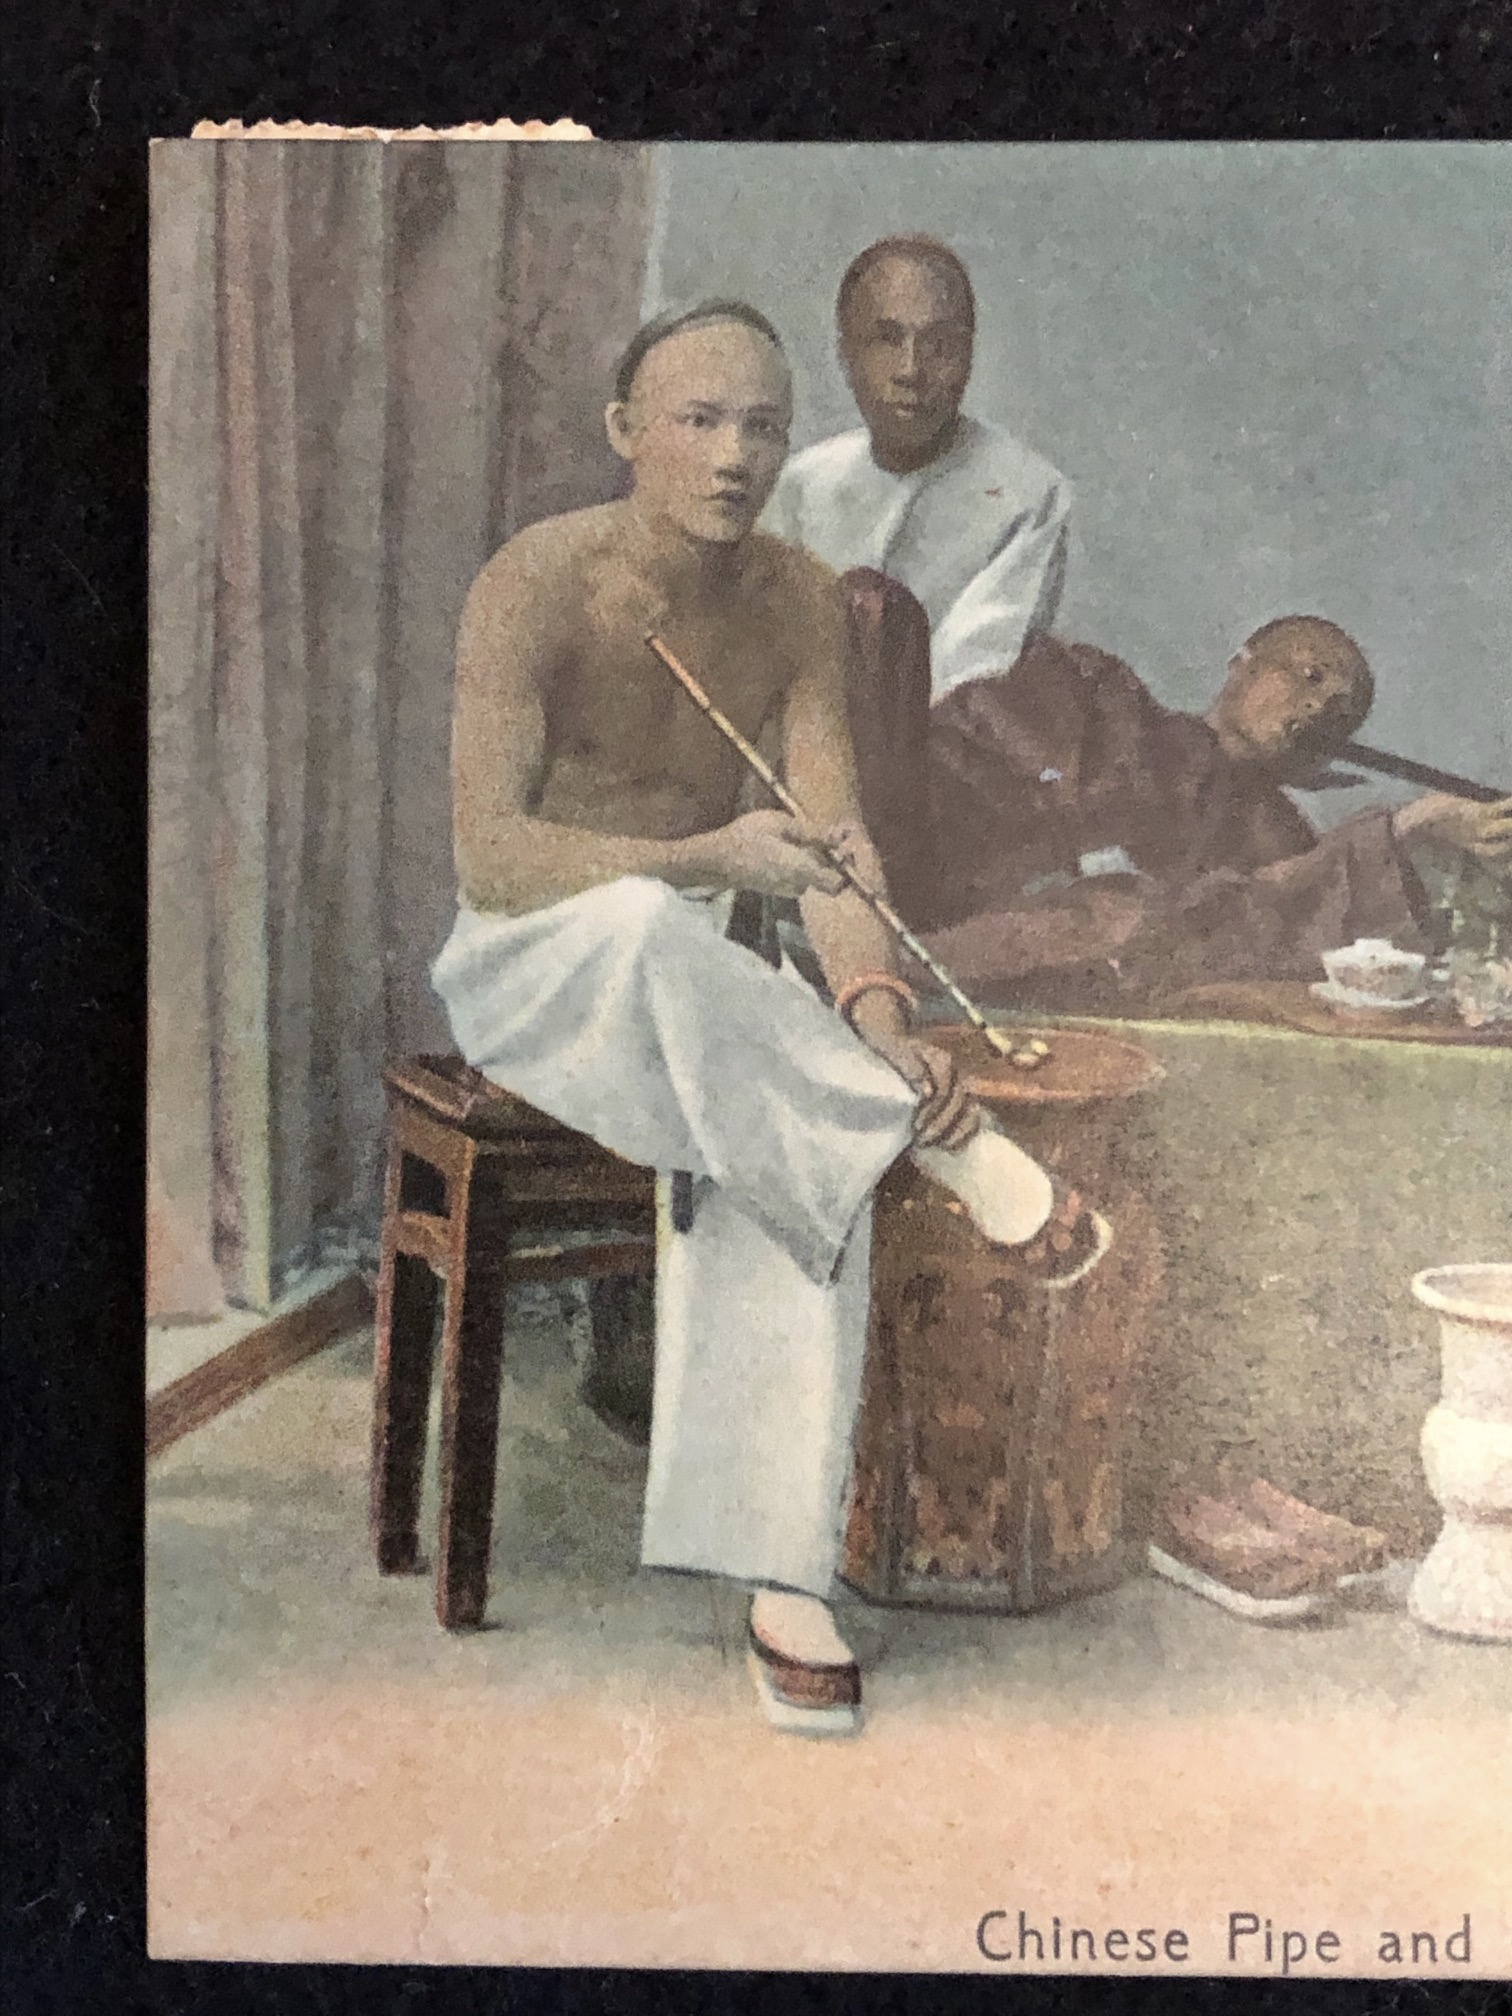 Chinese Pipe and Opium Smokers  Postcard M Sternbergn 3.jpg